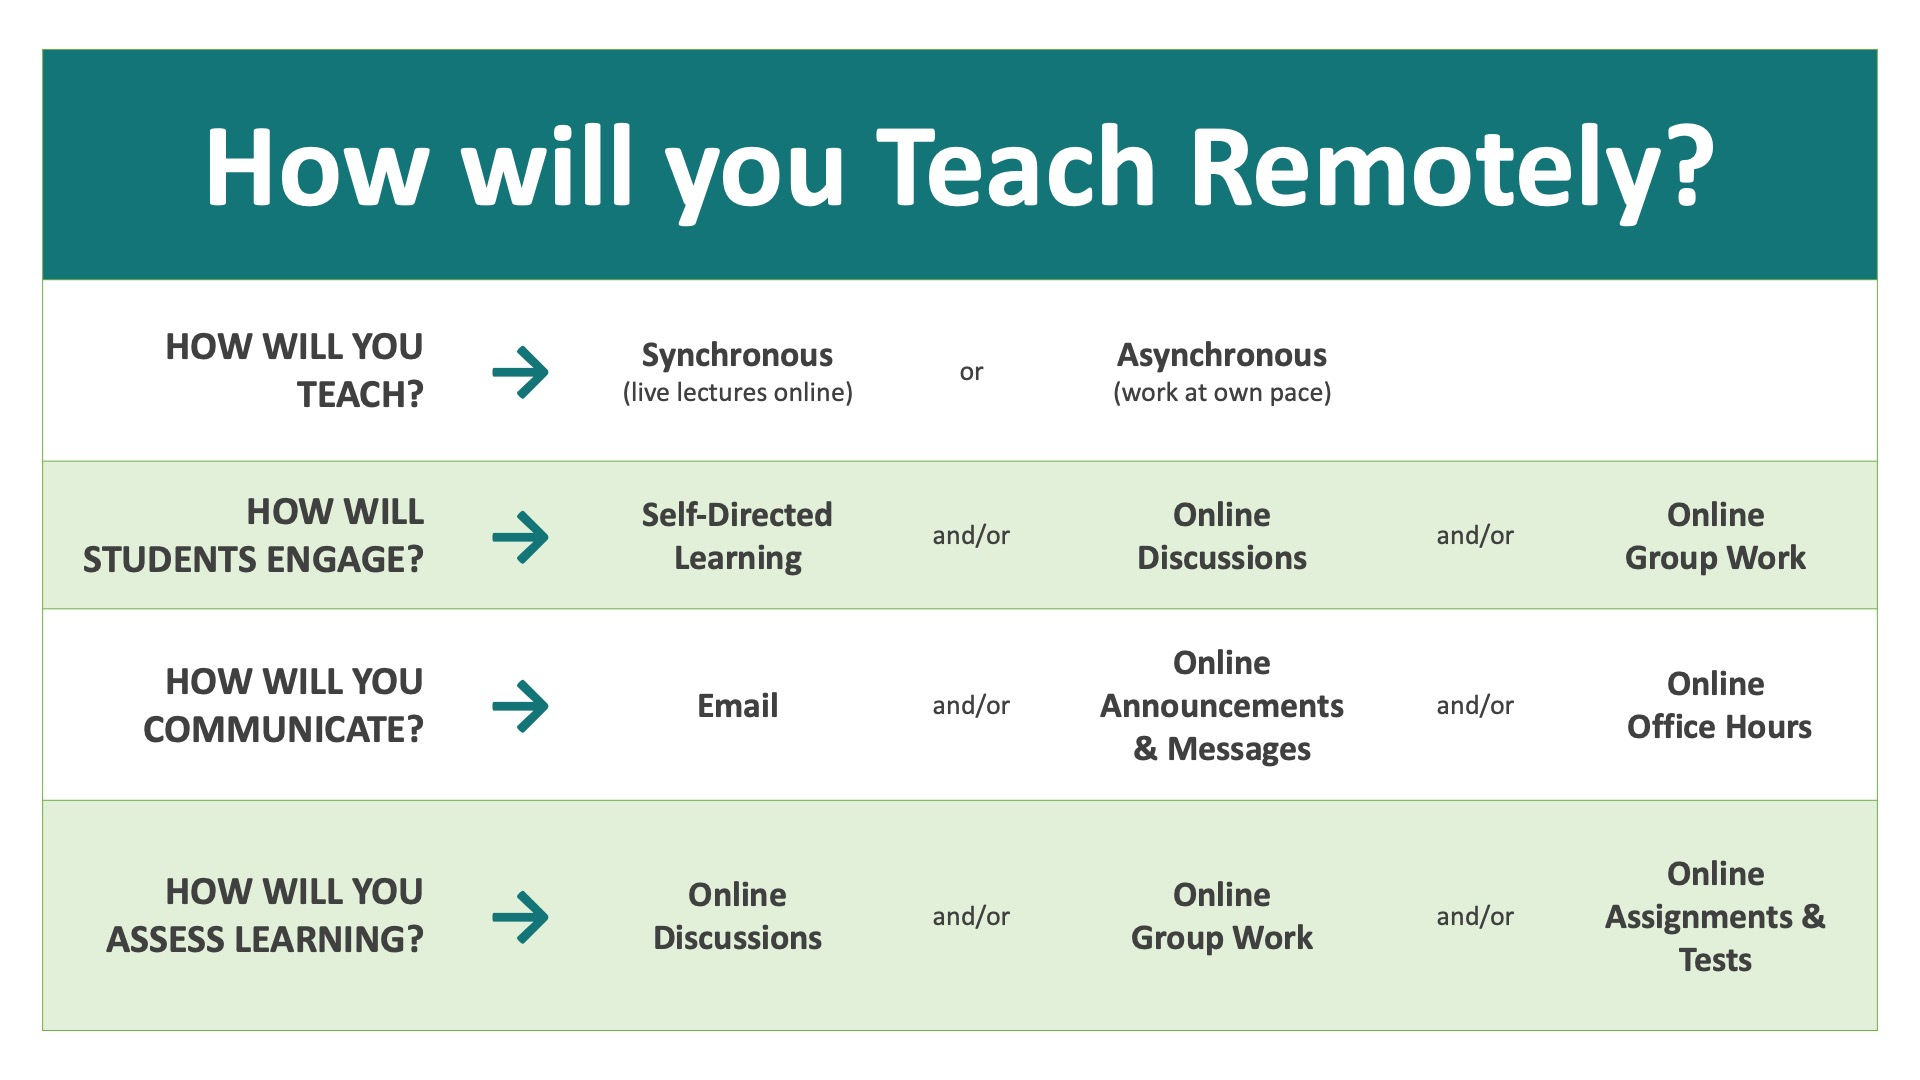 A matrix with comparisons of considerations for teaching remotely